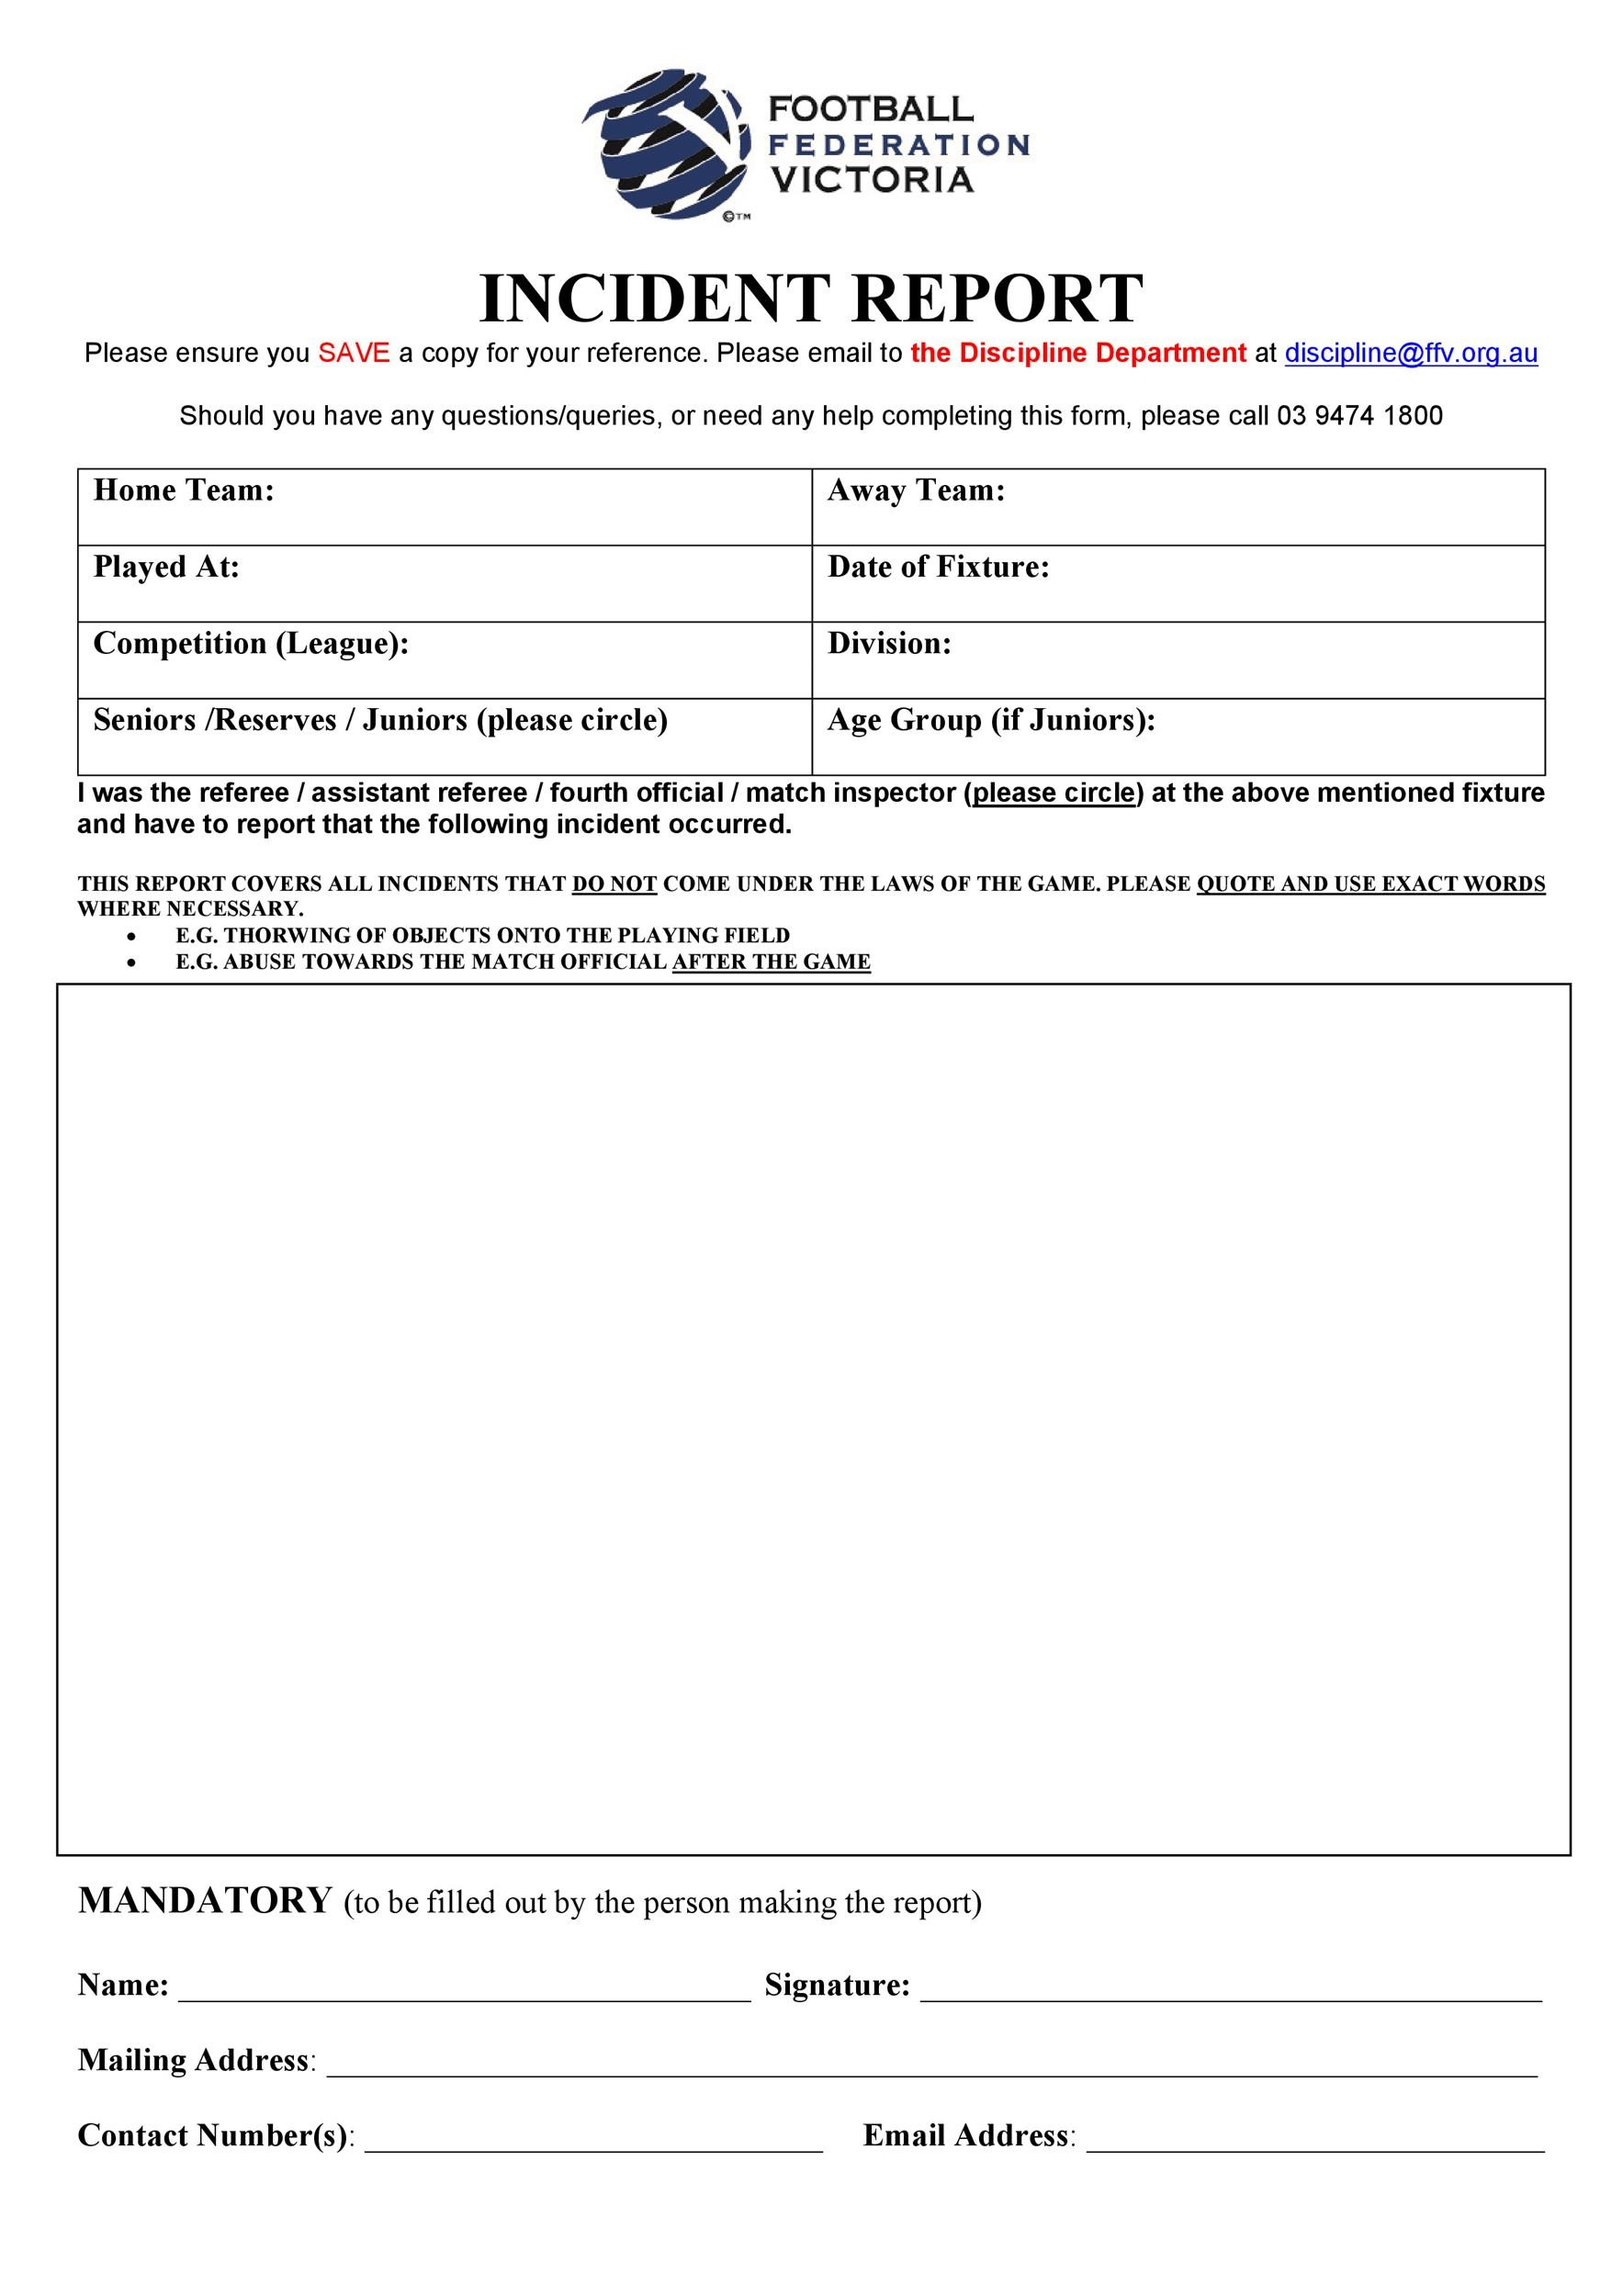 Free Incident Report Template 41  Free Incident Report Template